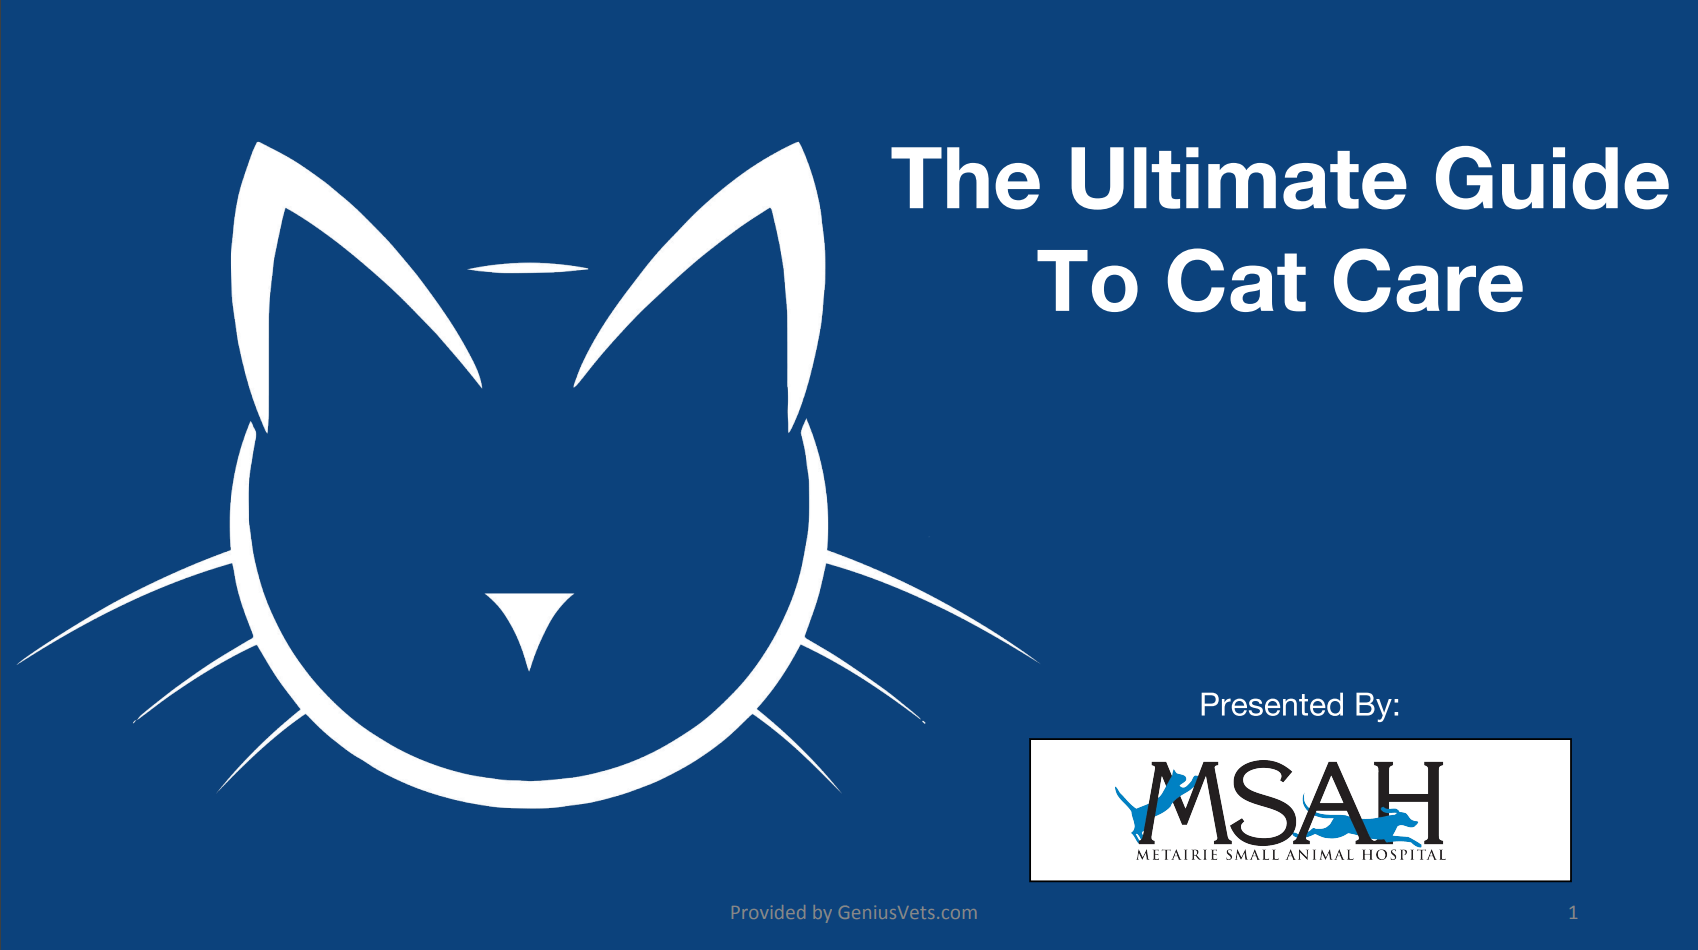 Guide to cat care cover image msah